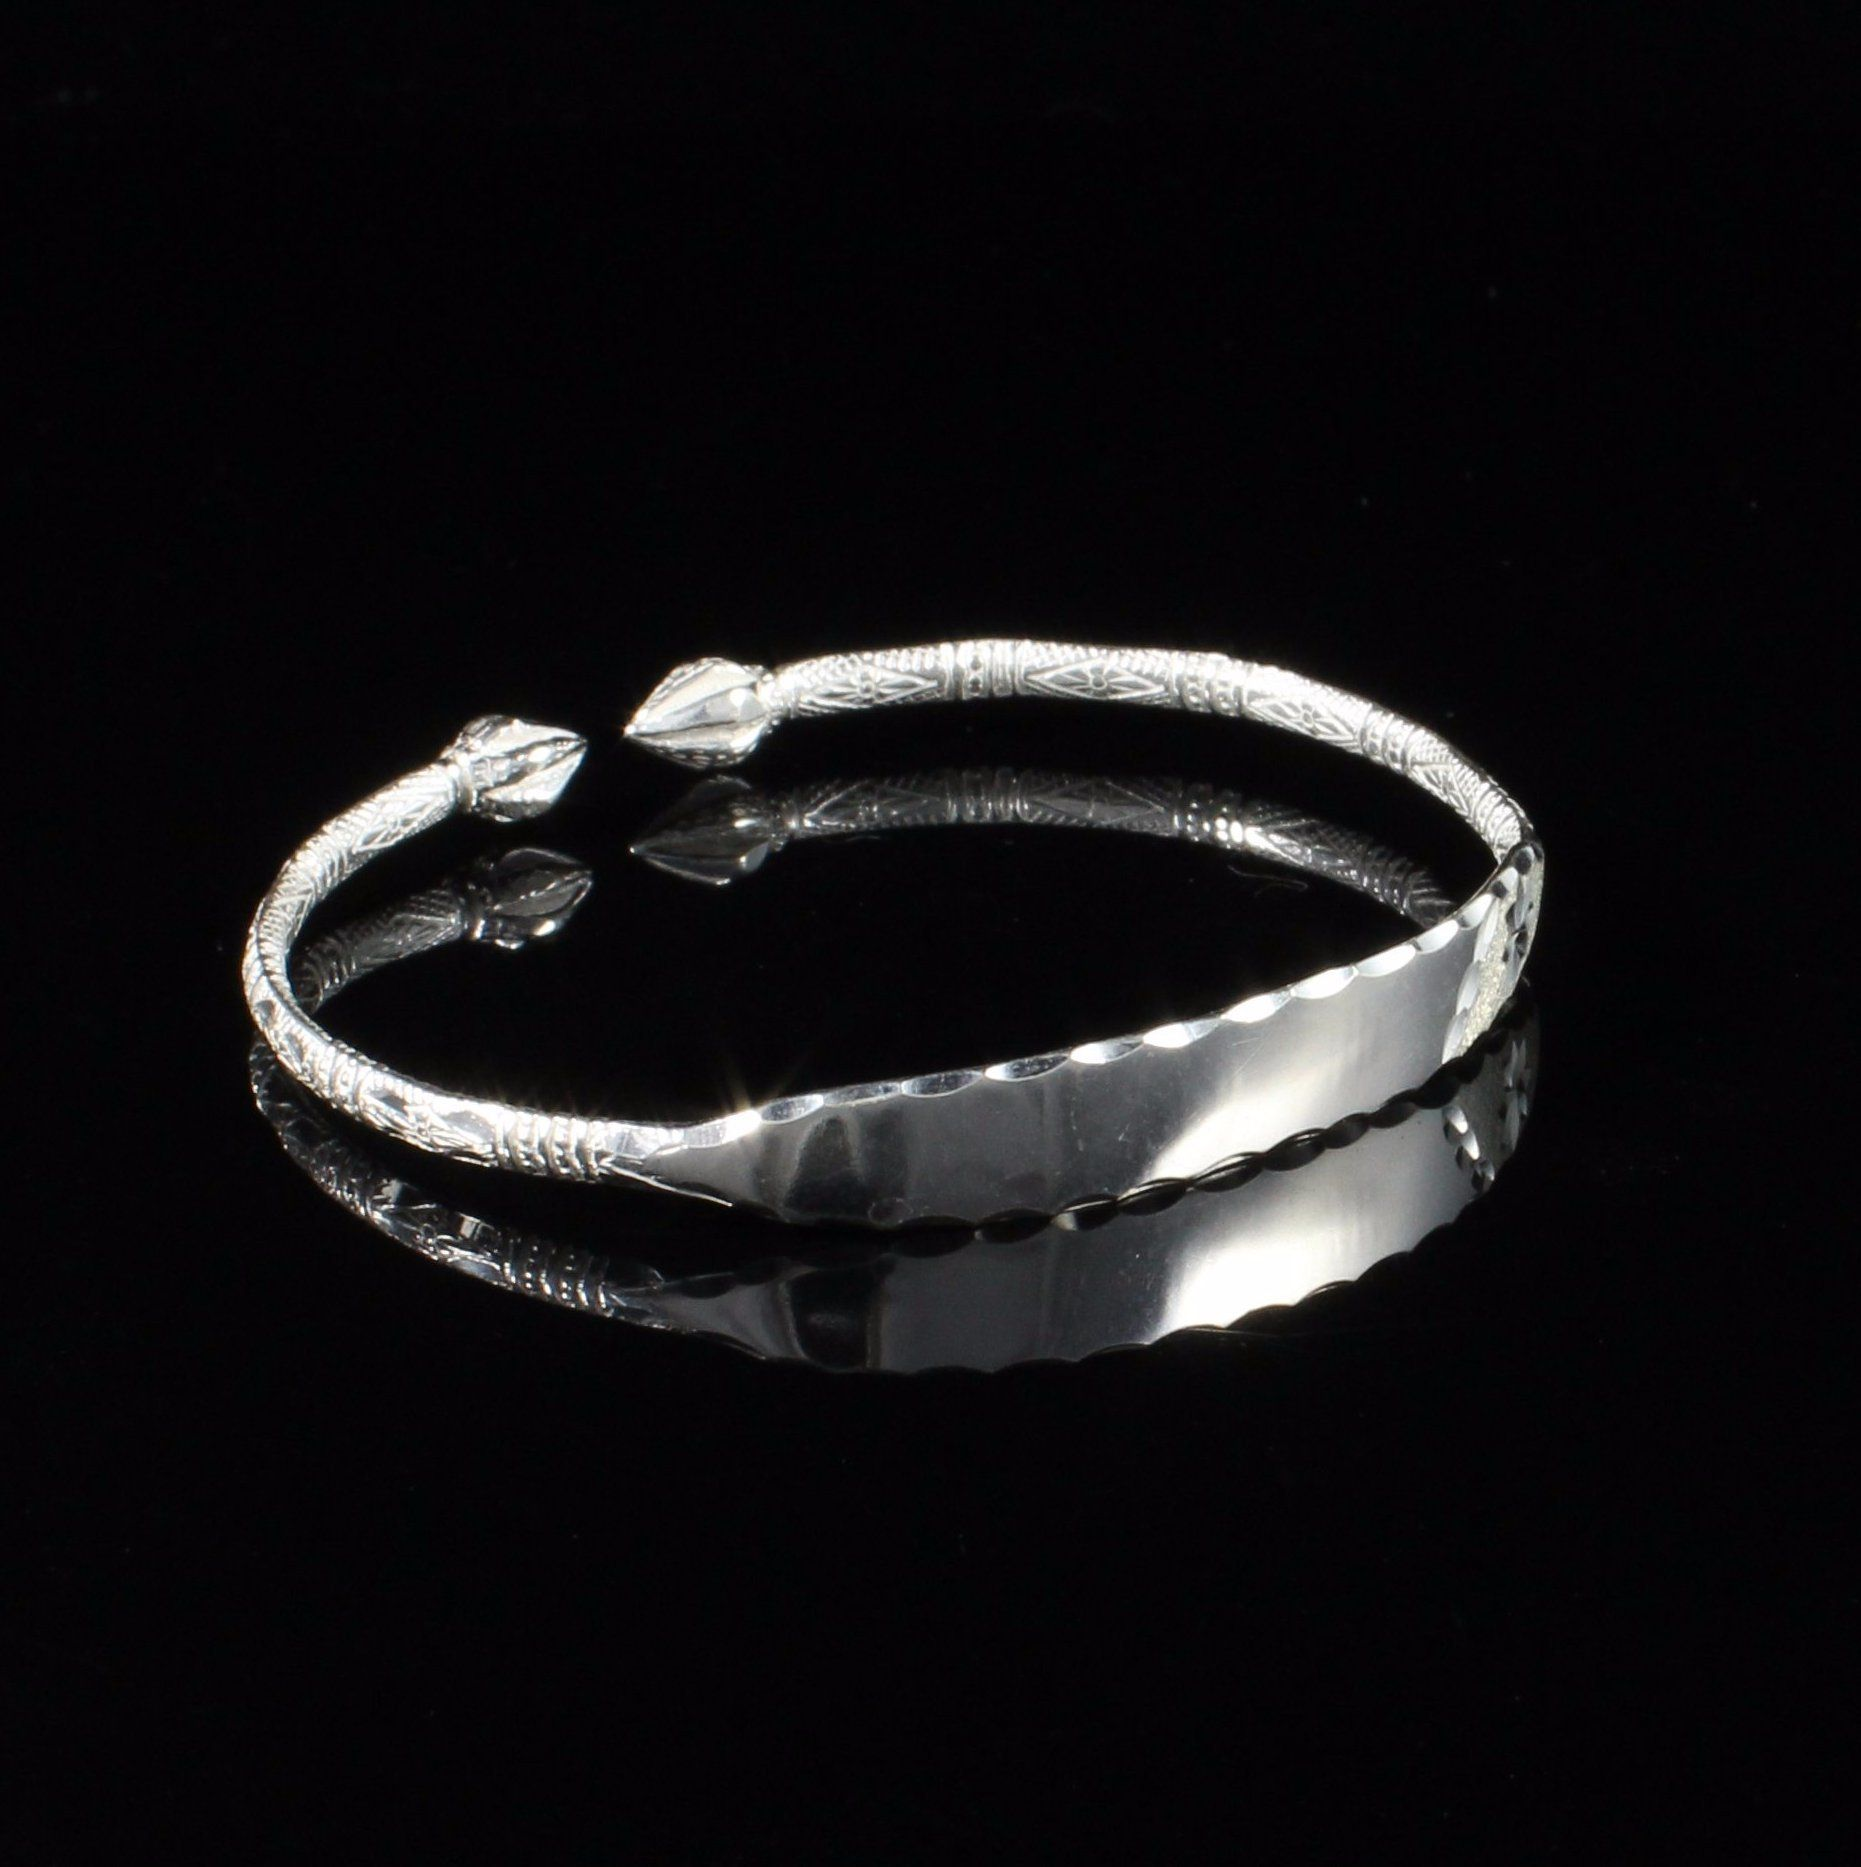 090 Cocoa Pod West Indian Bangle RING handmade in 925 Sterling Silver